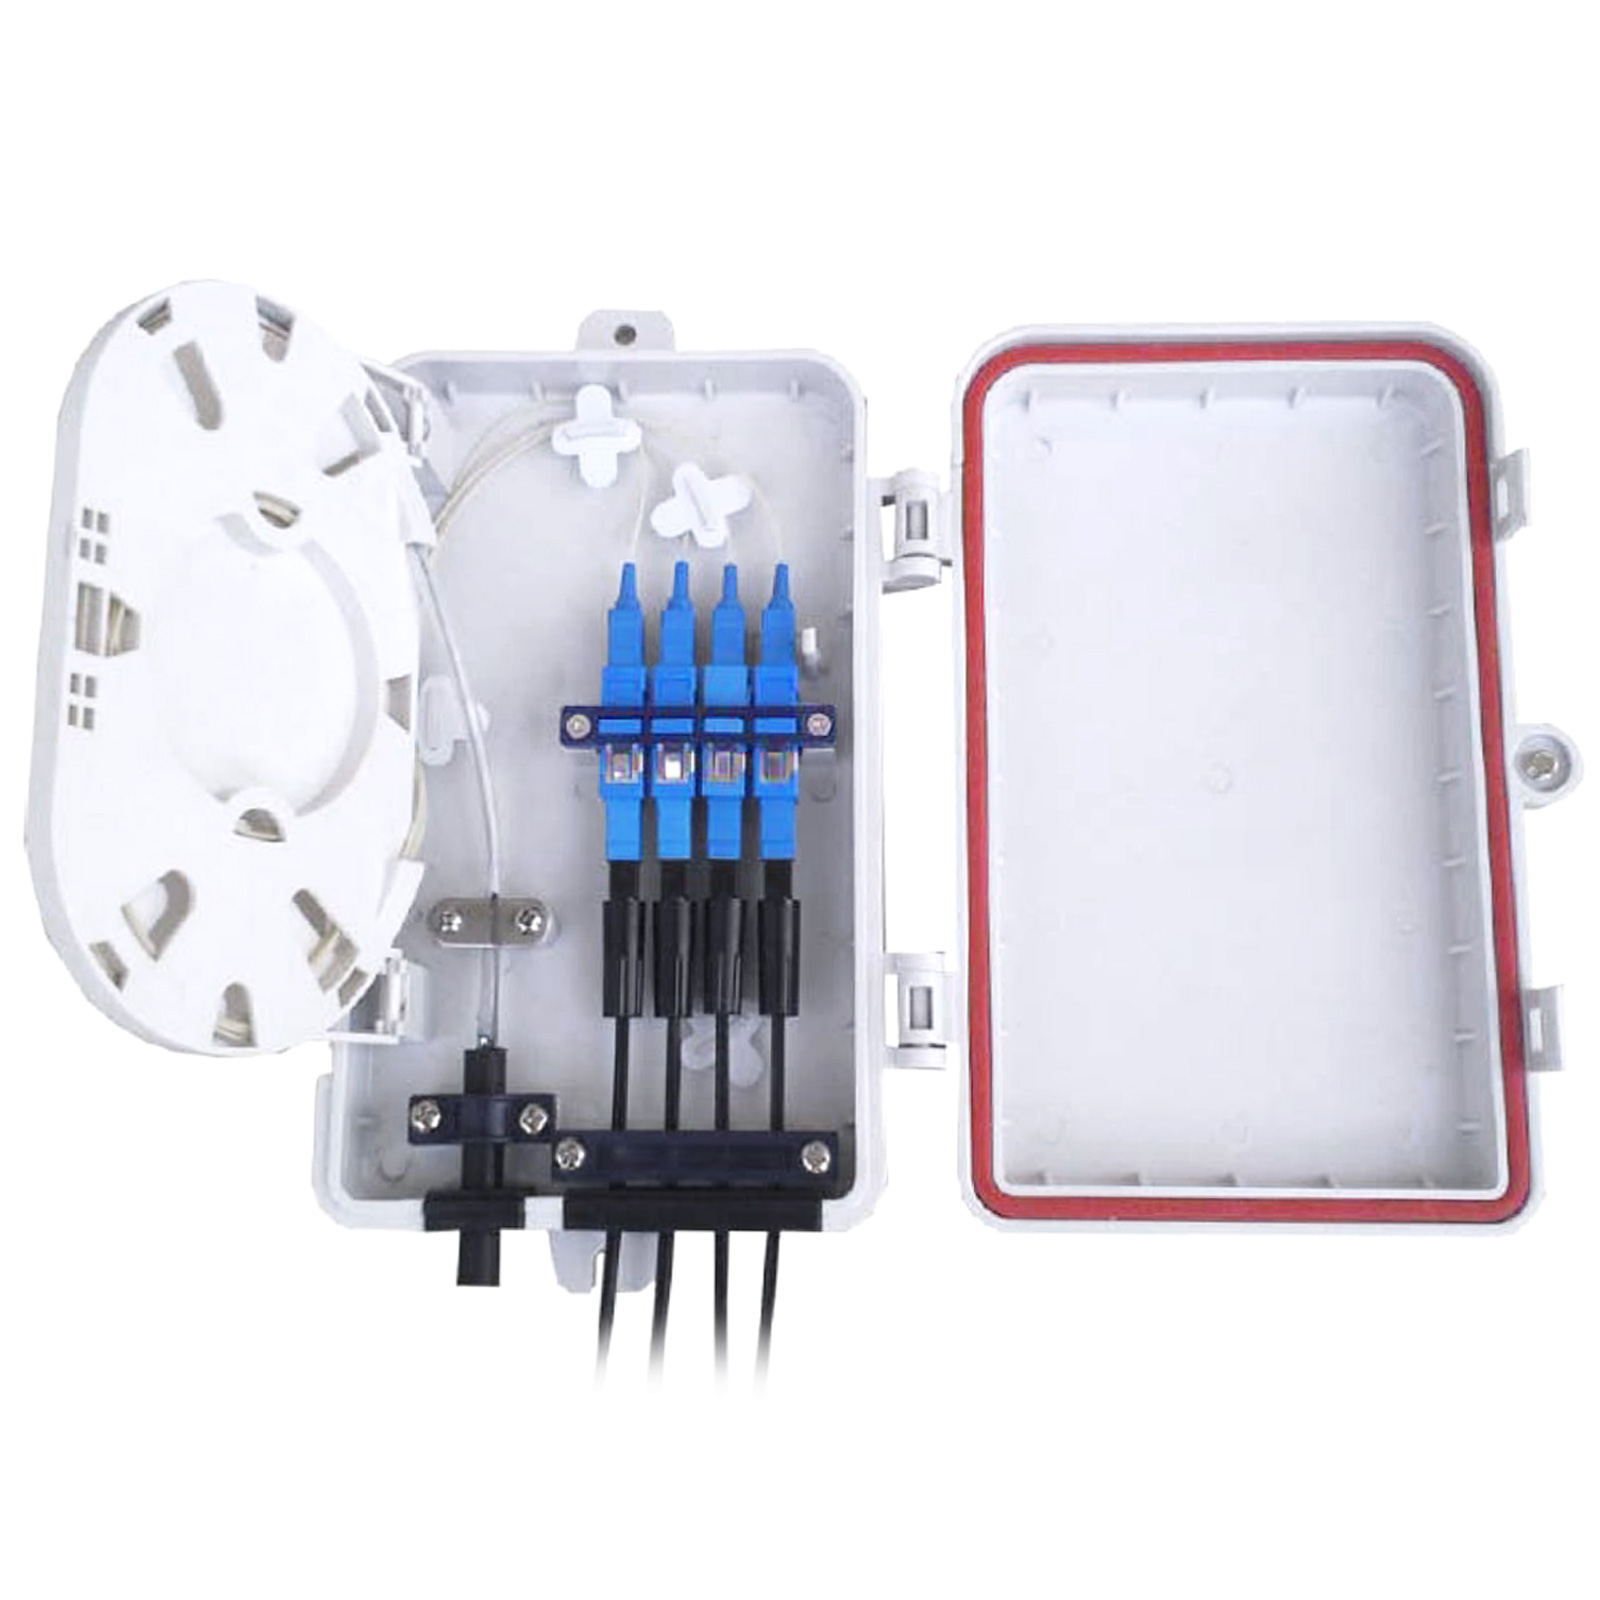 4 Port UV and Weather Resistant FTTH Fiber Termination Box, Wall Mount or Rackmount (Unloaded)